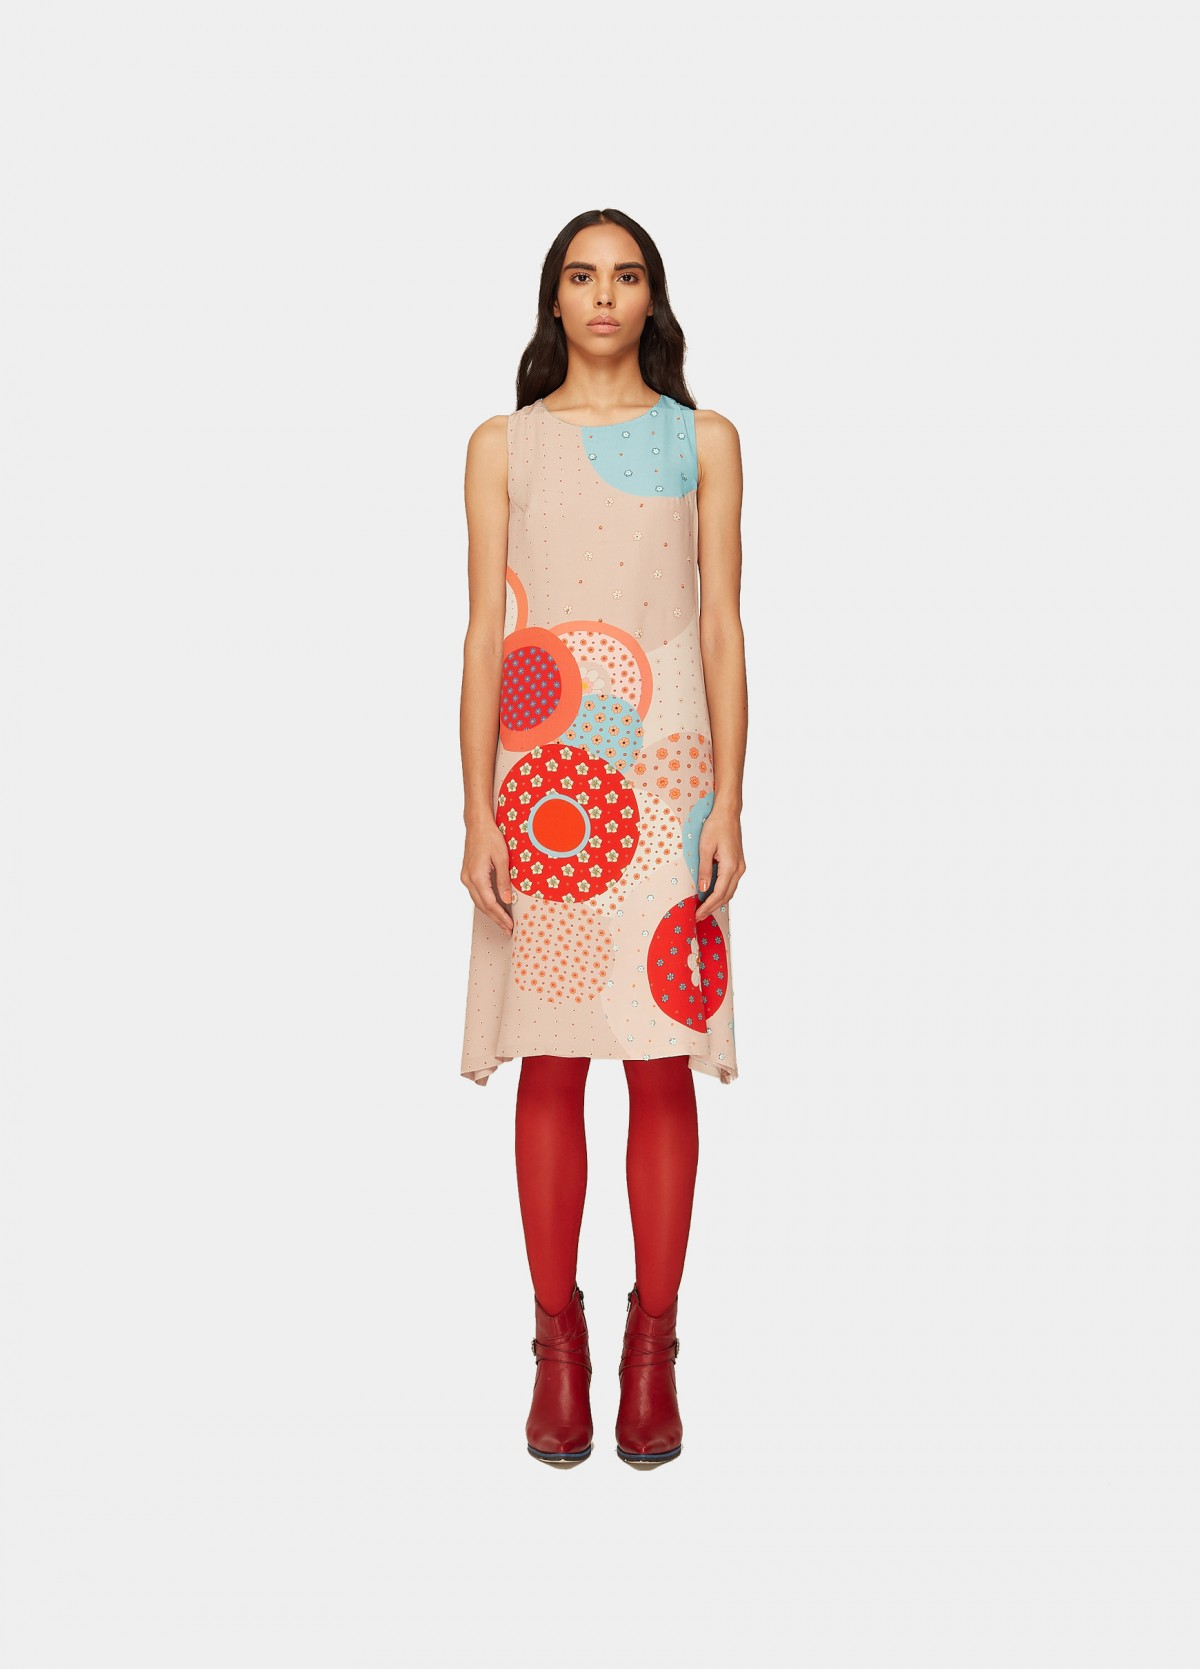 The Valley of Flowers Dress